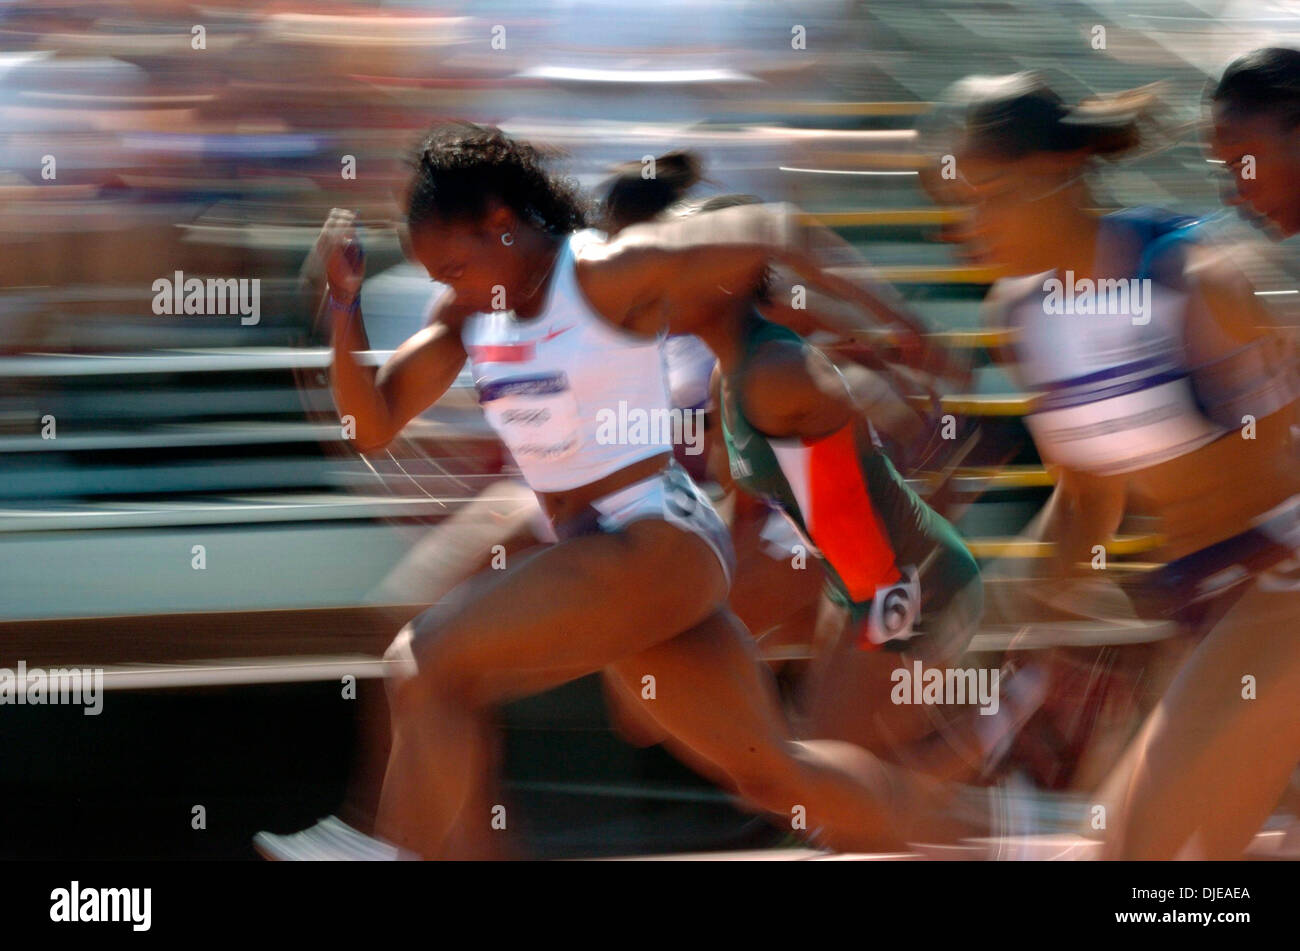 Jul 09, 2004; Sacramento, CA, USA; GAIL DEVERS powers away from the field in her 100 meter semi-final on day two of the 2004 U.S. Track and Field Trials at Hornet Stadium. - Stock Image